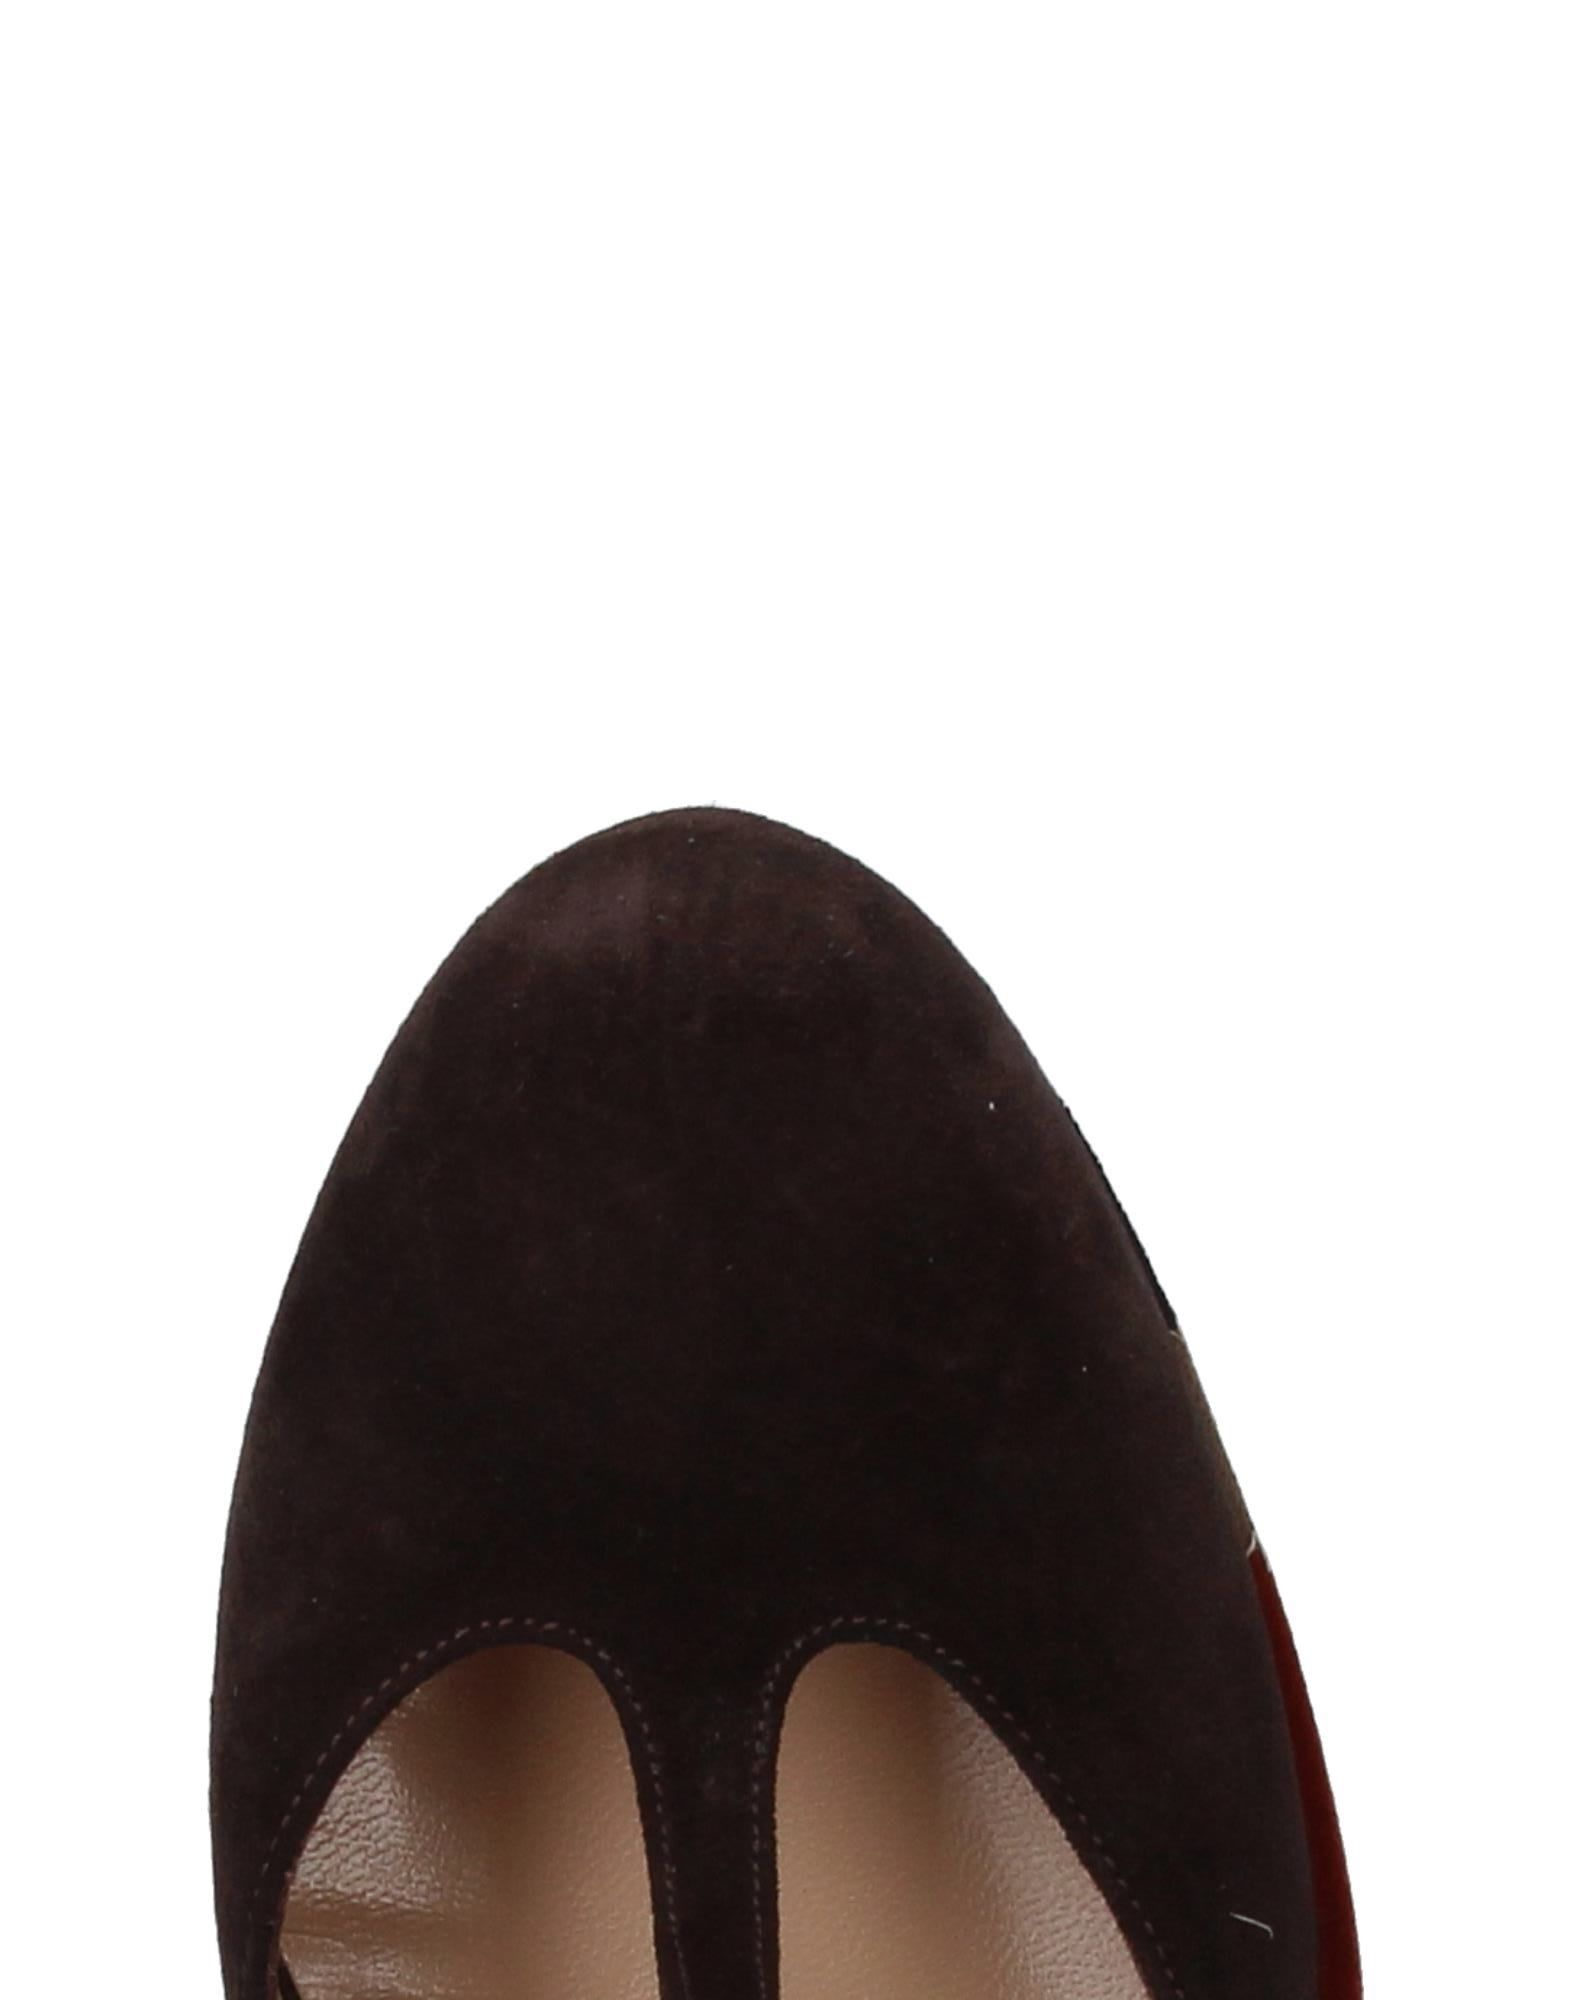 Escarpins Gianni Marra Femme - Escarpins Gianni Marra sur